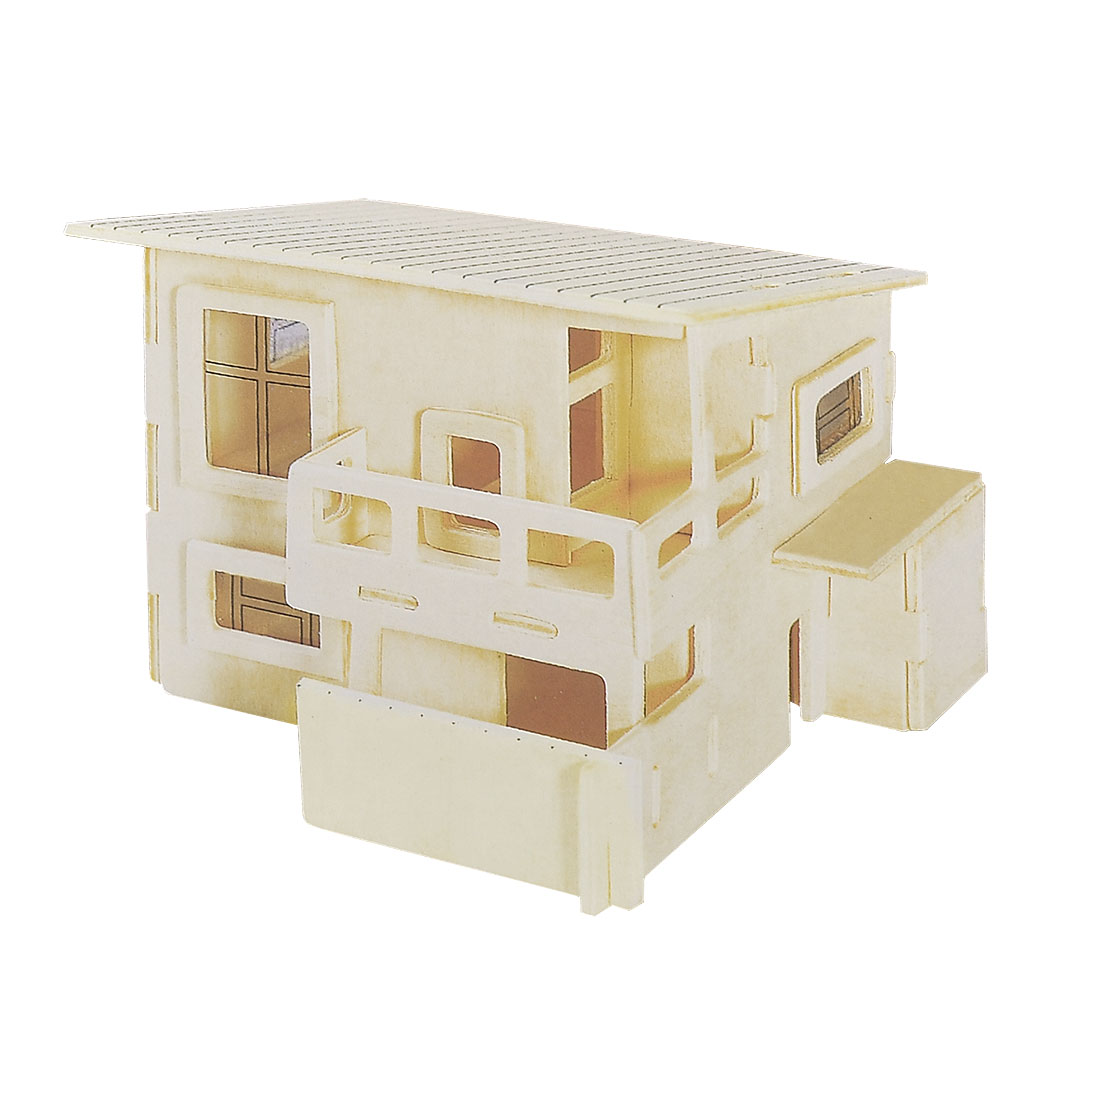 Wateitaku House Design Model 3D Puzzle Toy Gift Woodcraft Construction Kit